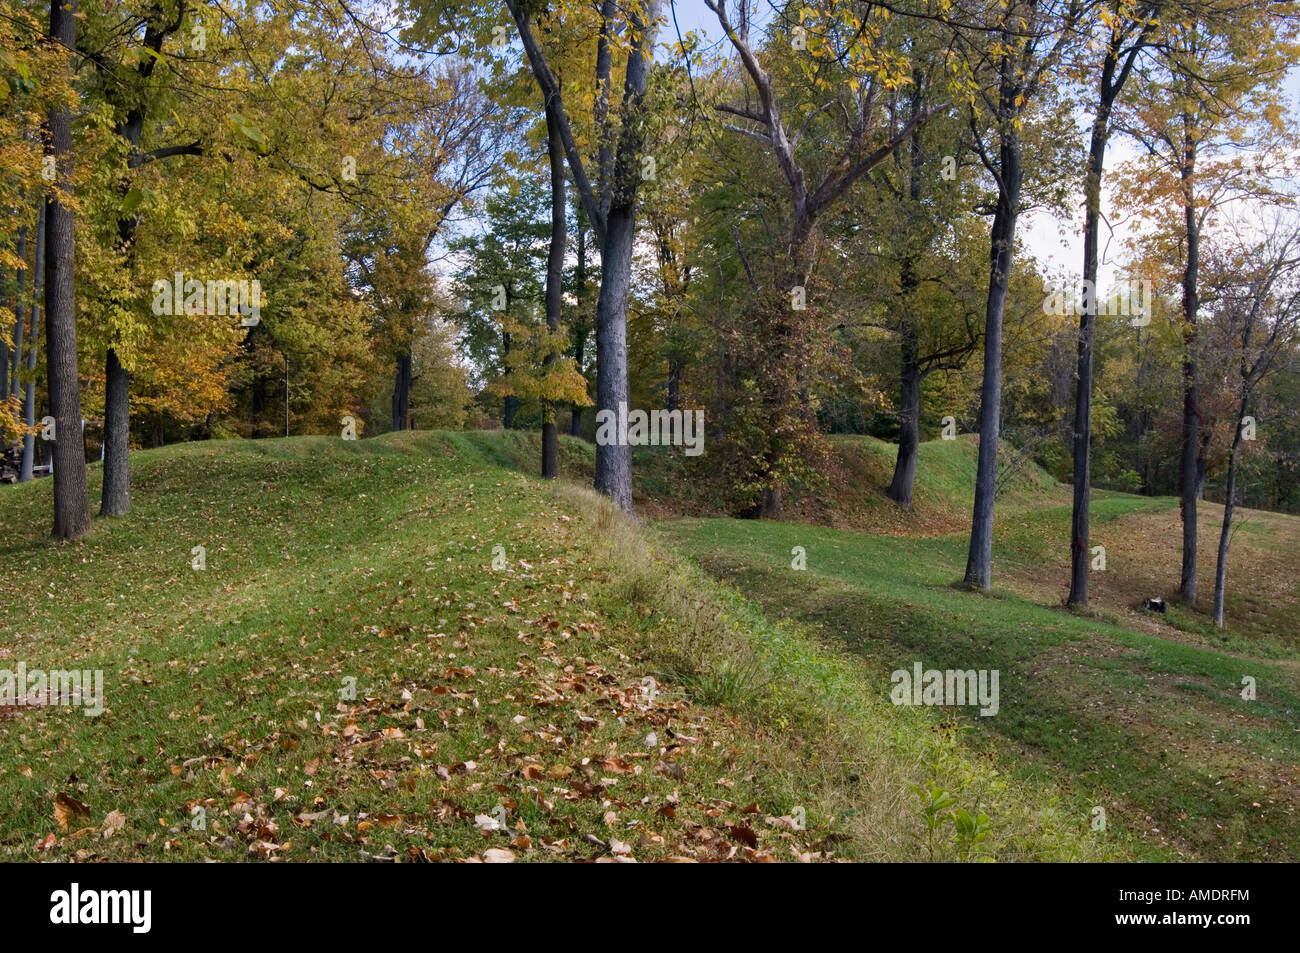 Earthwork Defensive Walls of Fort Duffield West Point Kentucky - Stock Image